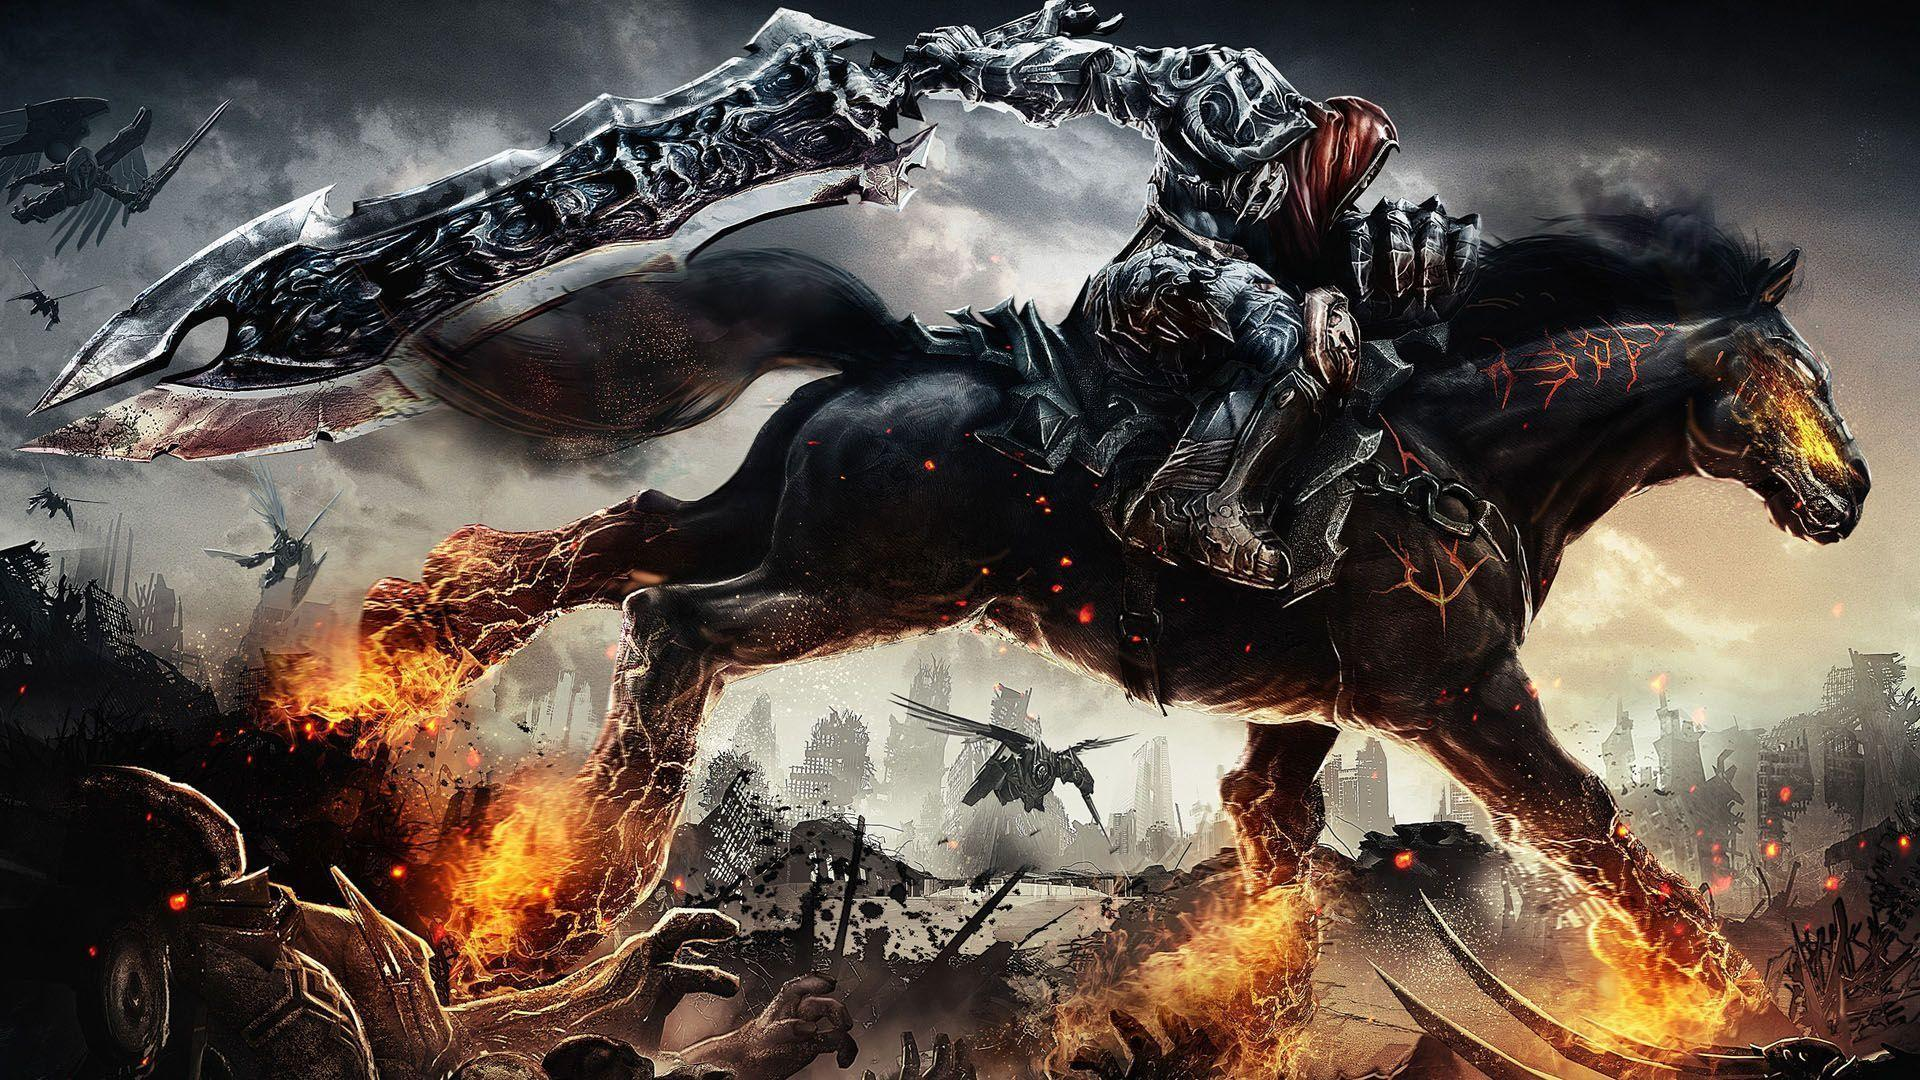 Game darksiders wallpapers wallpapers 1920x1080 px